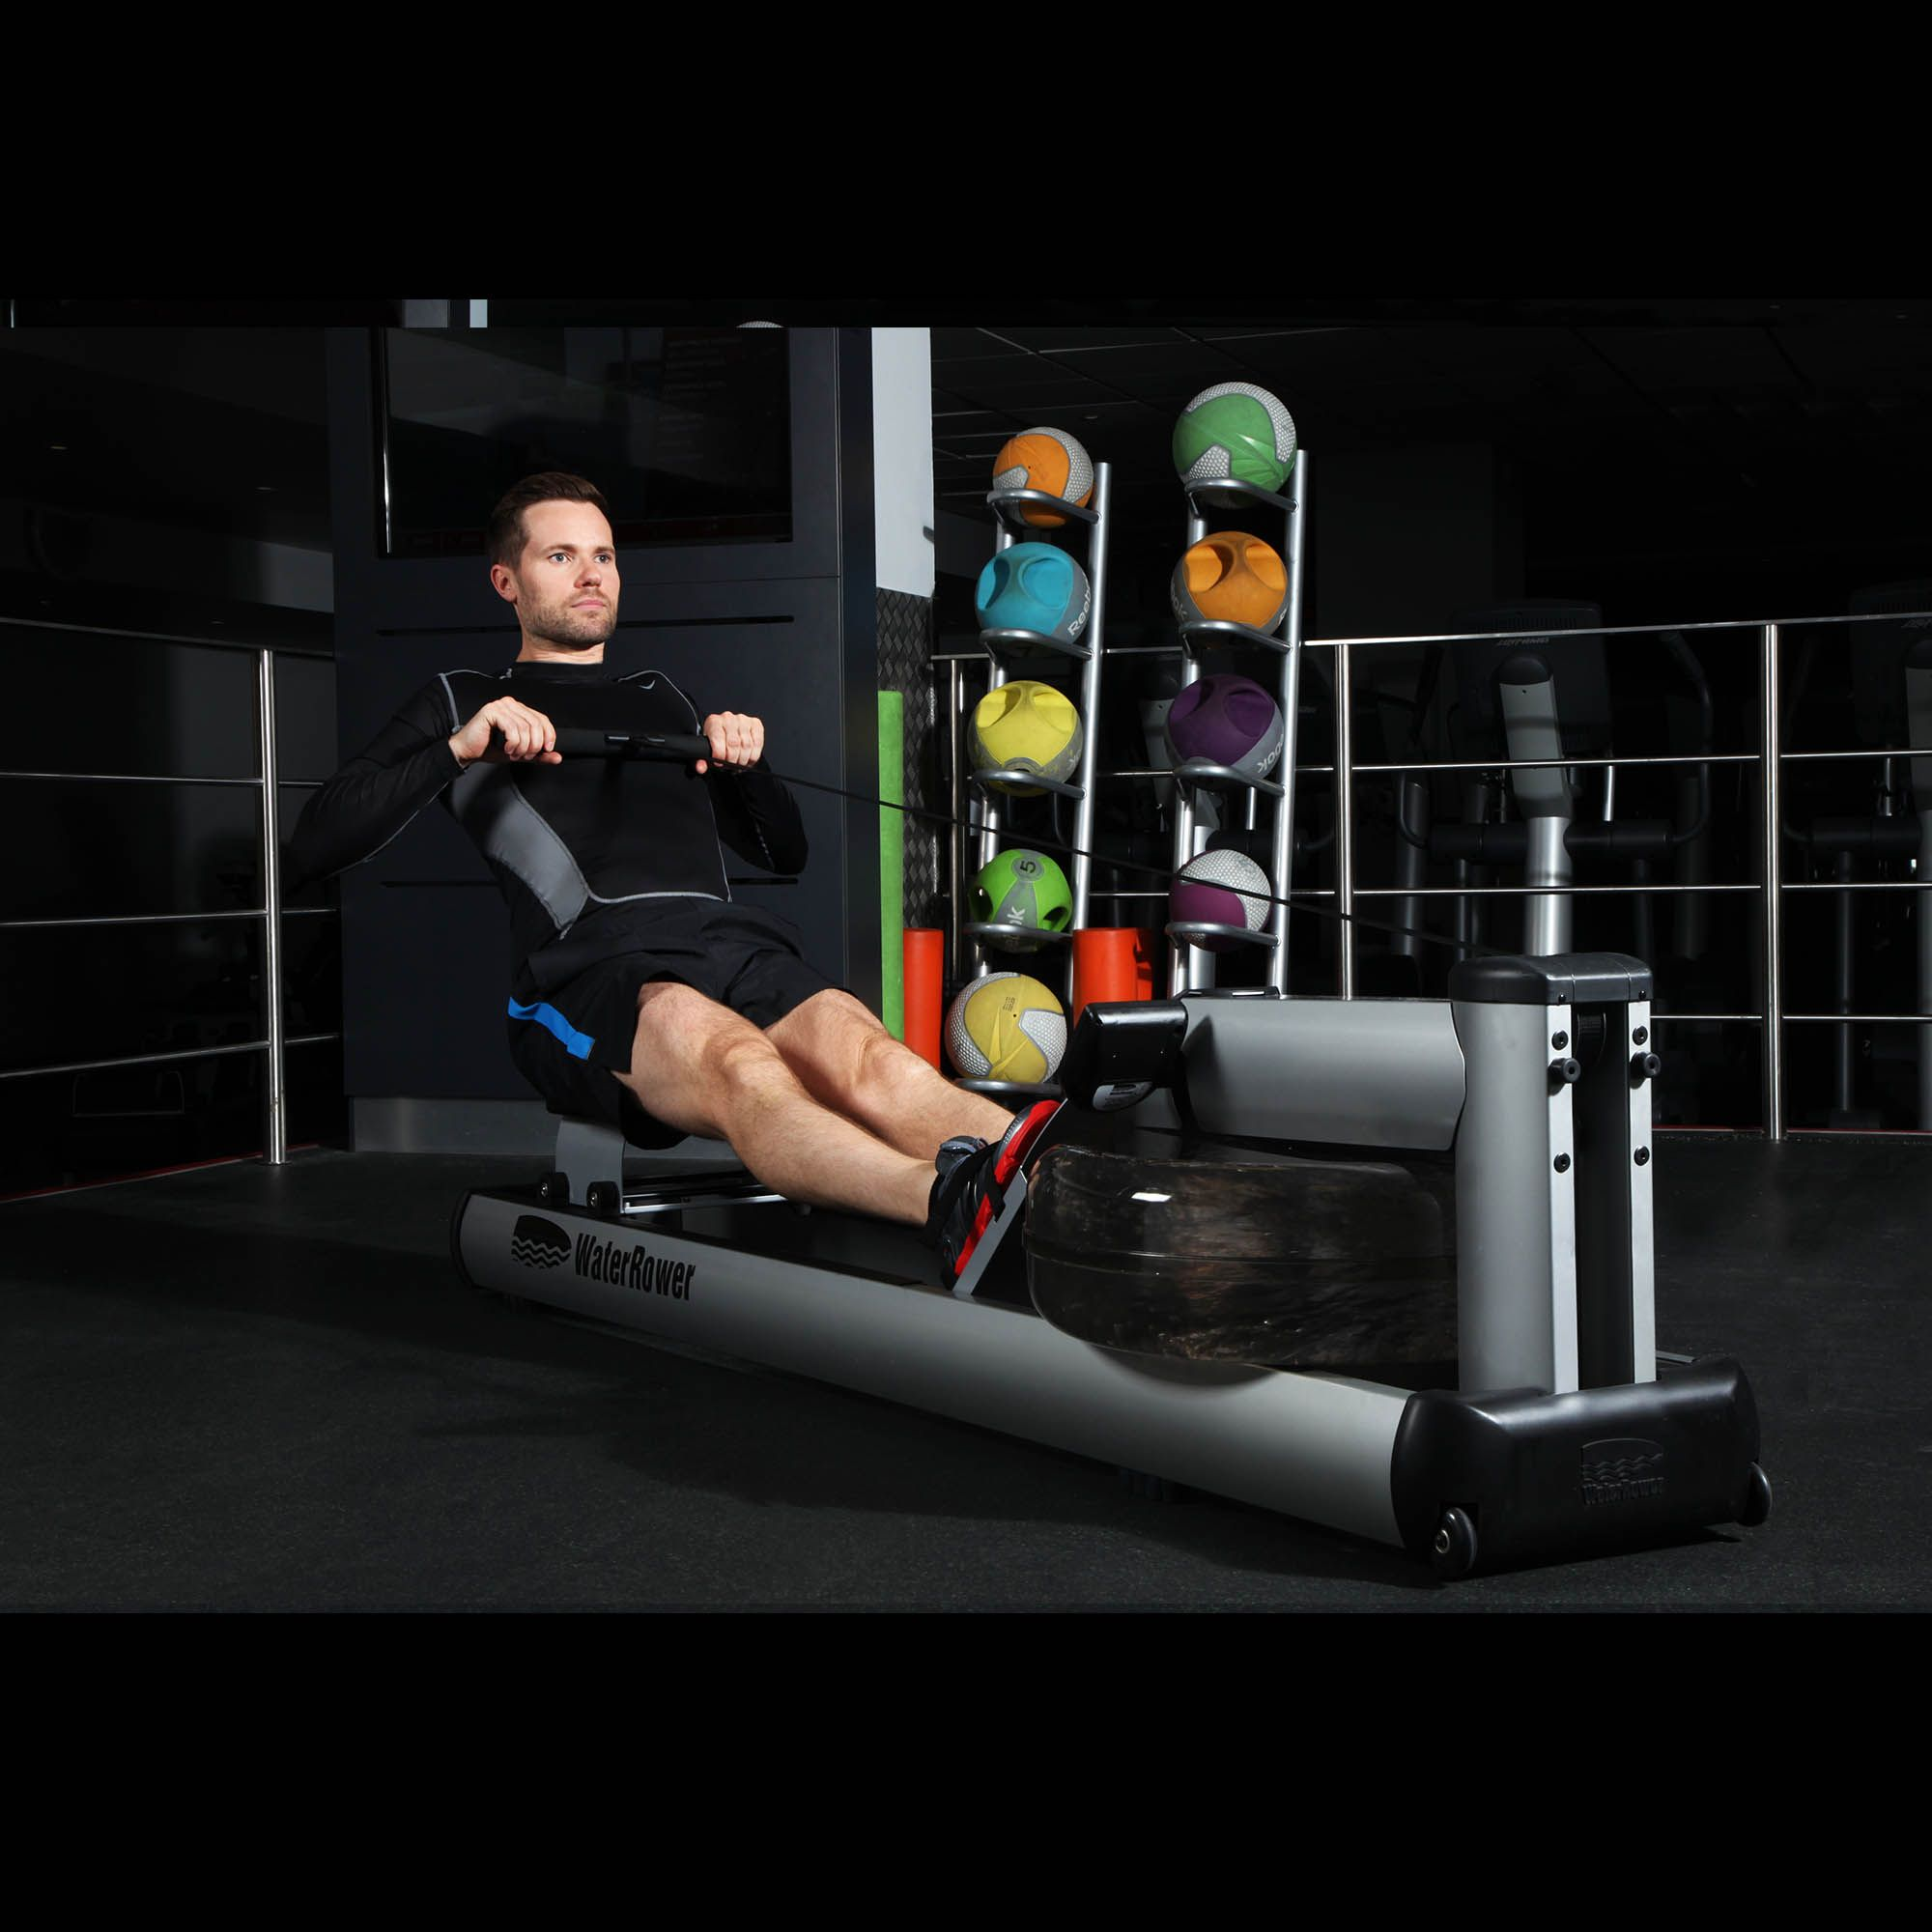 waterrower rowing machine with s4 monitor